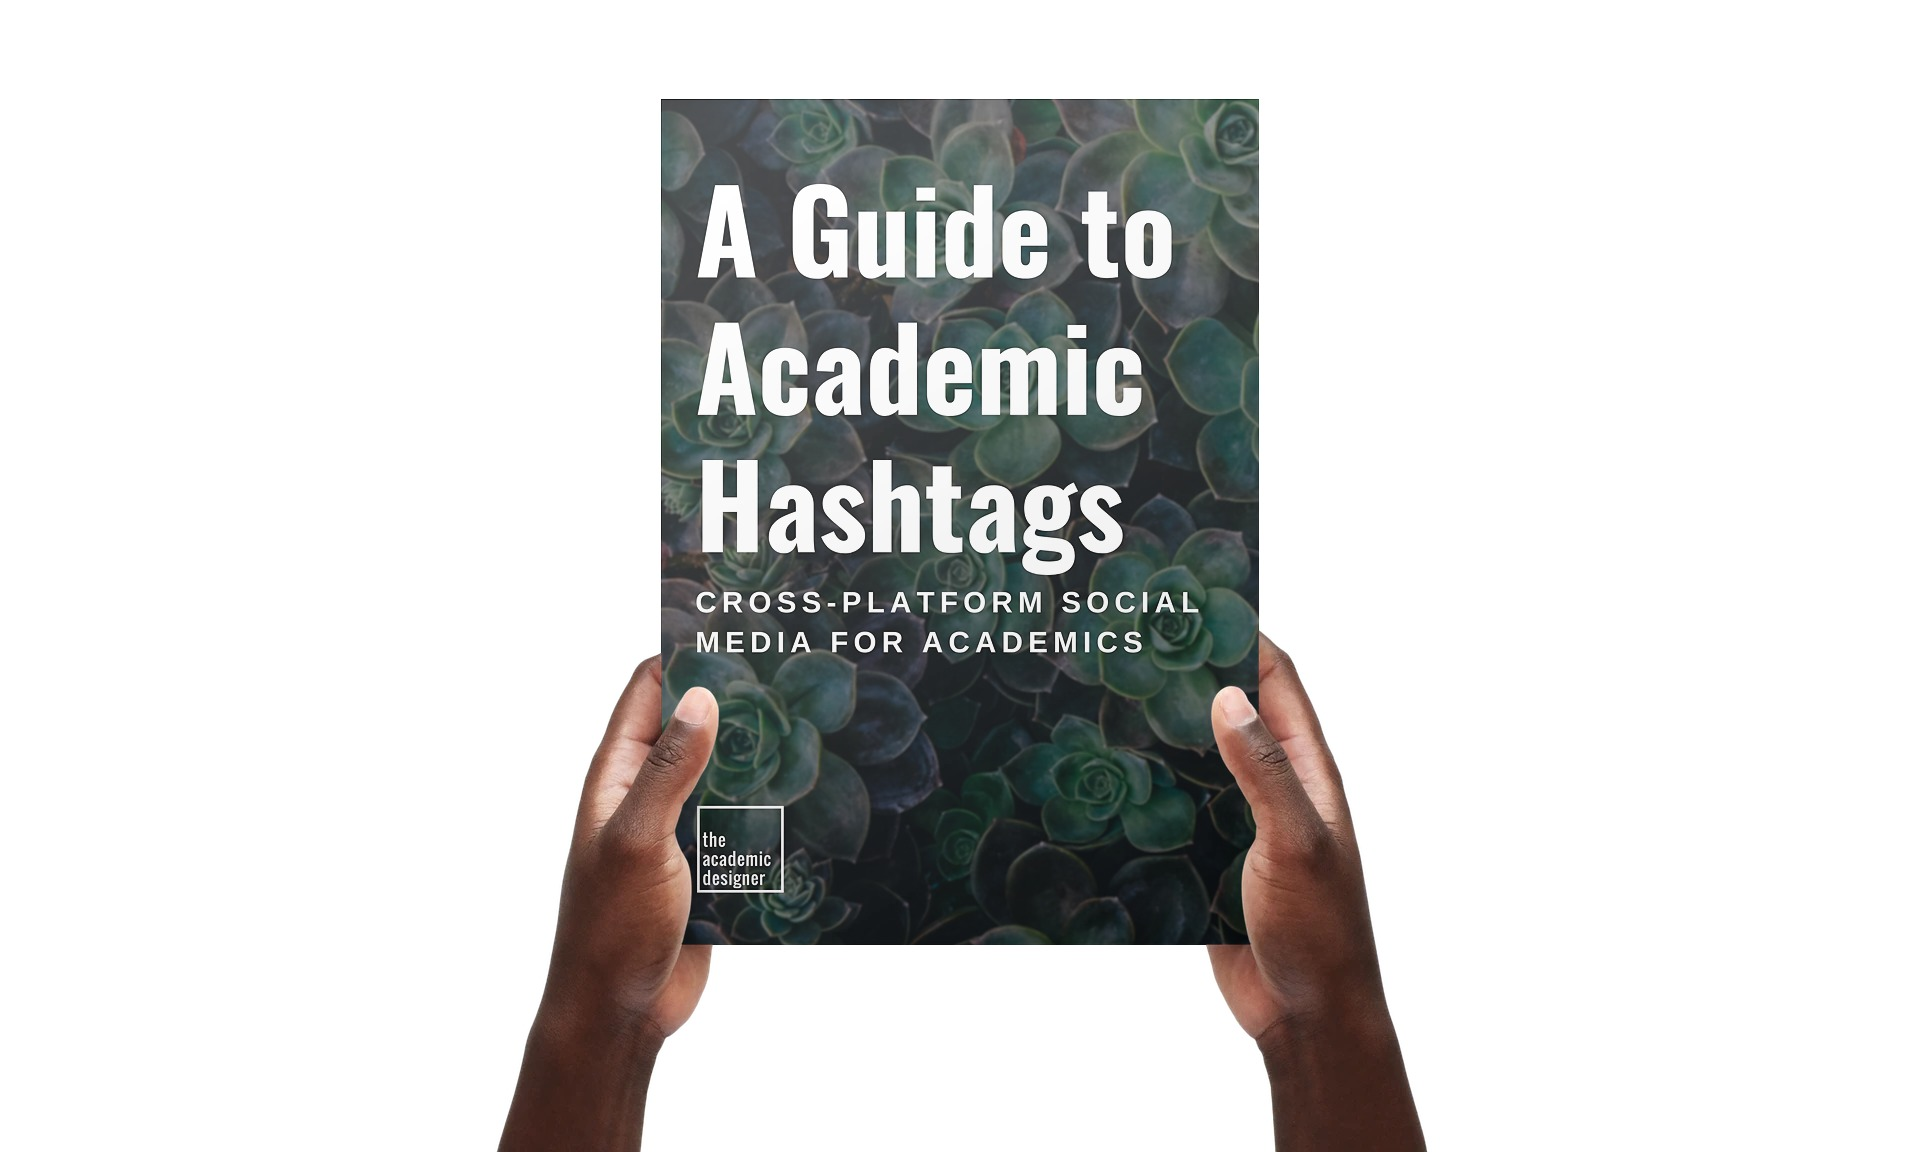 A guide to academic hashtags